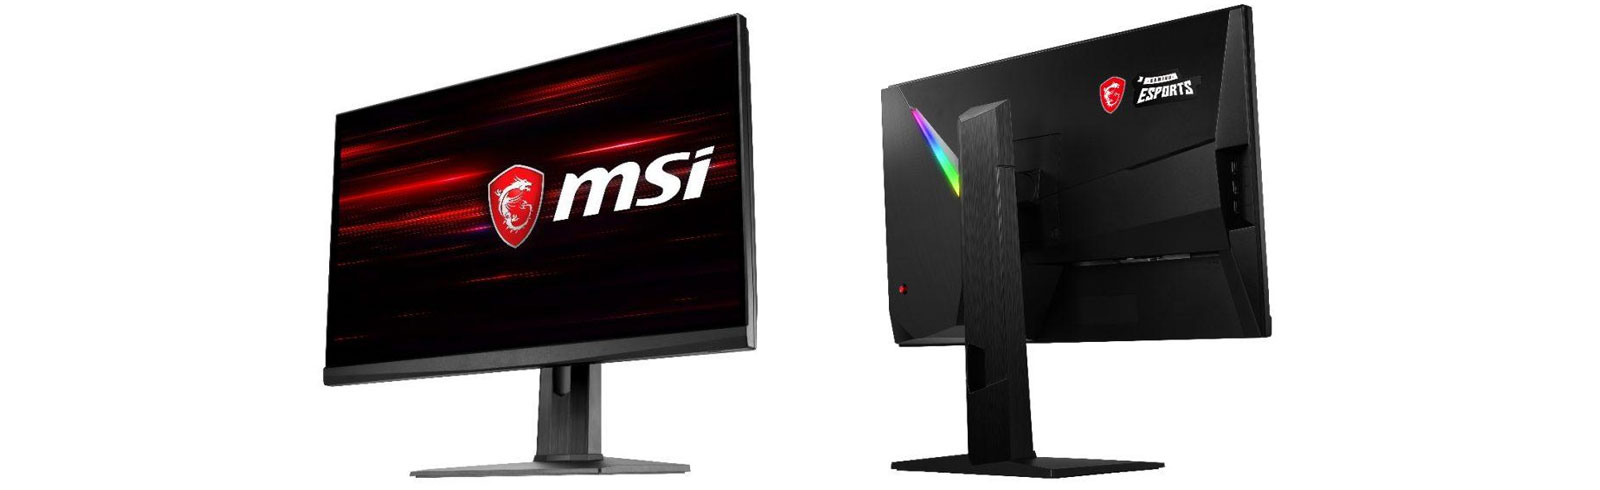 The MSI Optix MAG251RX goes official, is NVIDIA G-Sync Compatible monitor with 240Hz refresh rate